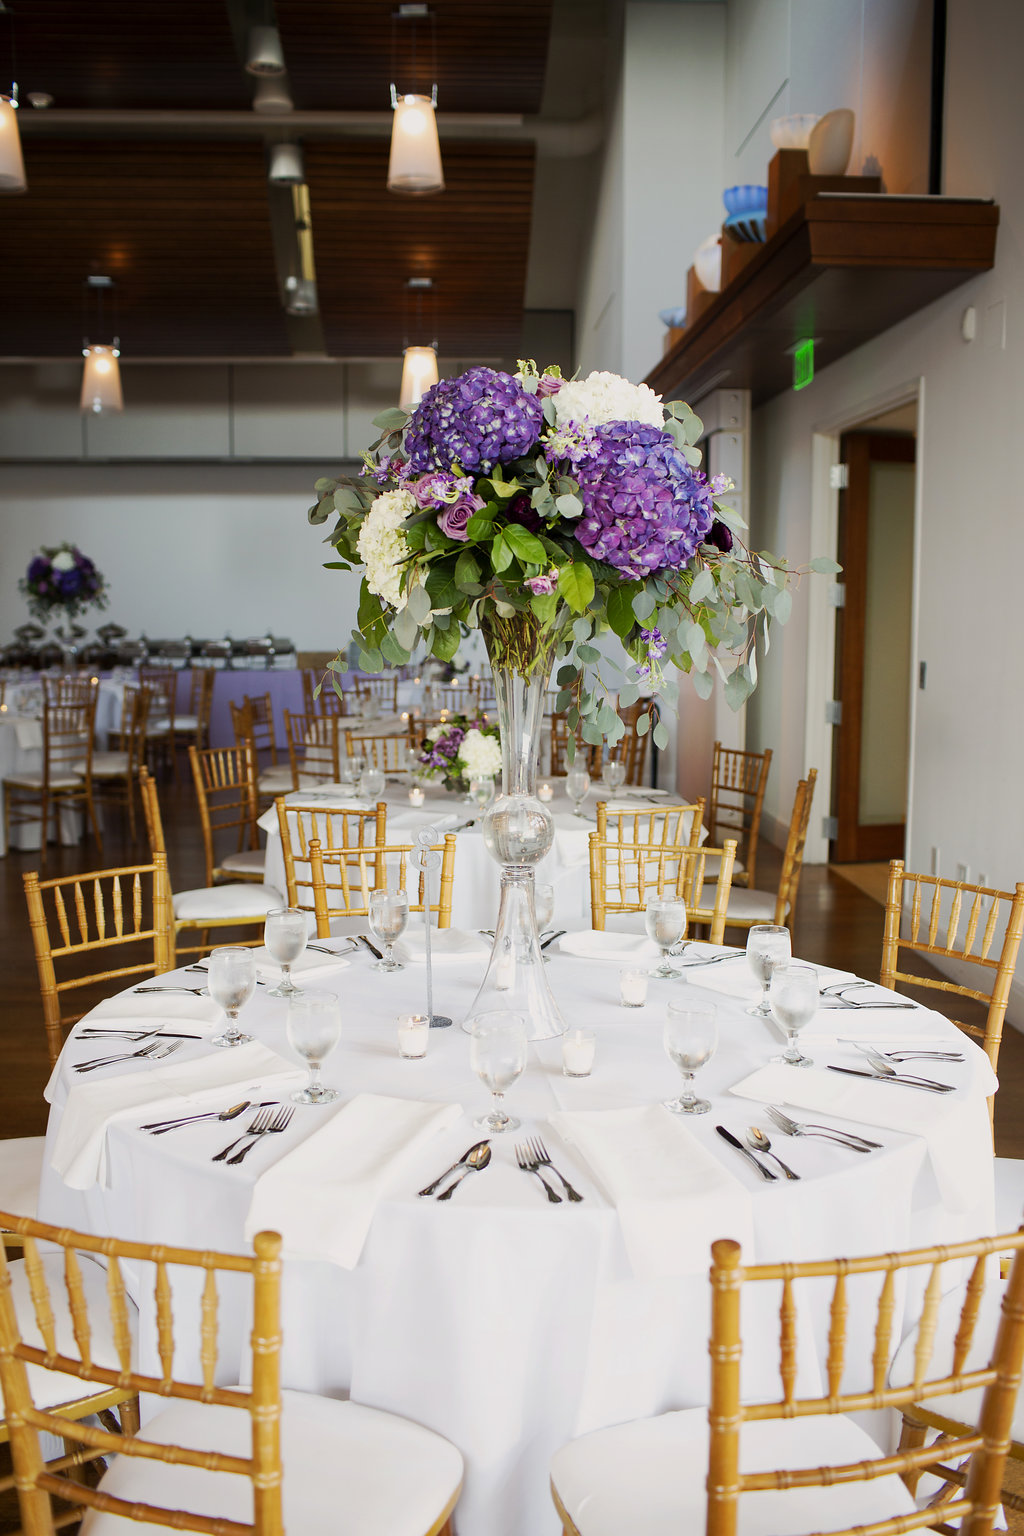 Gold chiavari chairs from Party Reflections and stunning purple centerpieces from Whats Up Buttercup create a elegant atmosphere at a spring wedding in Uptown Charlotte